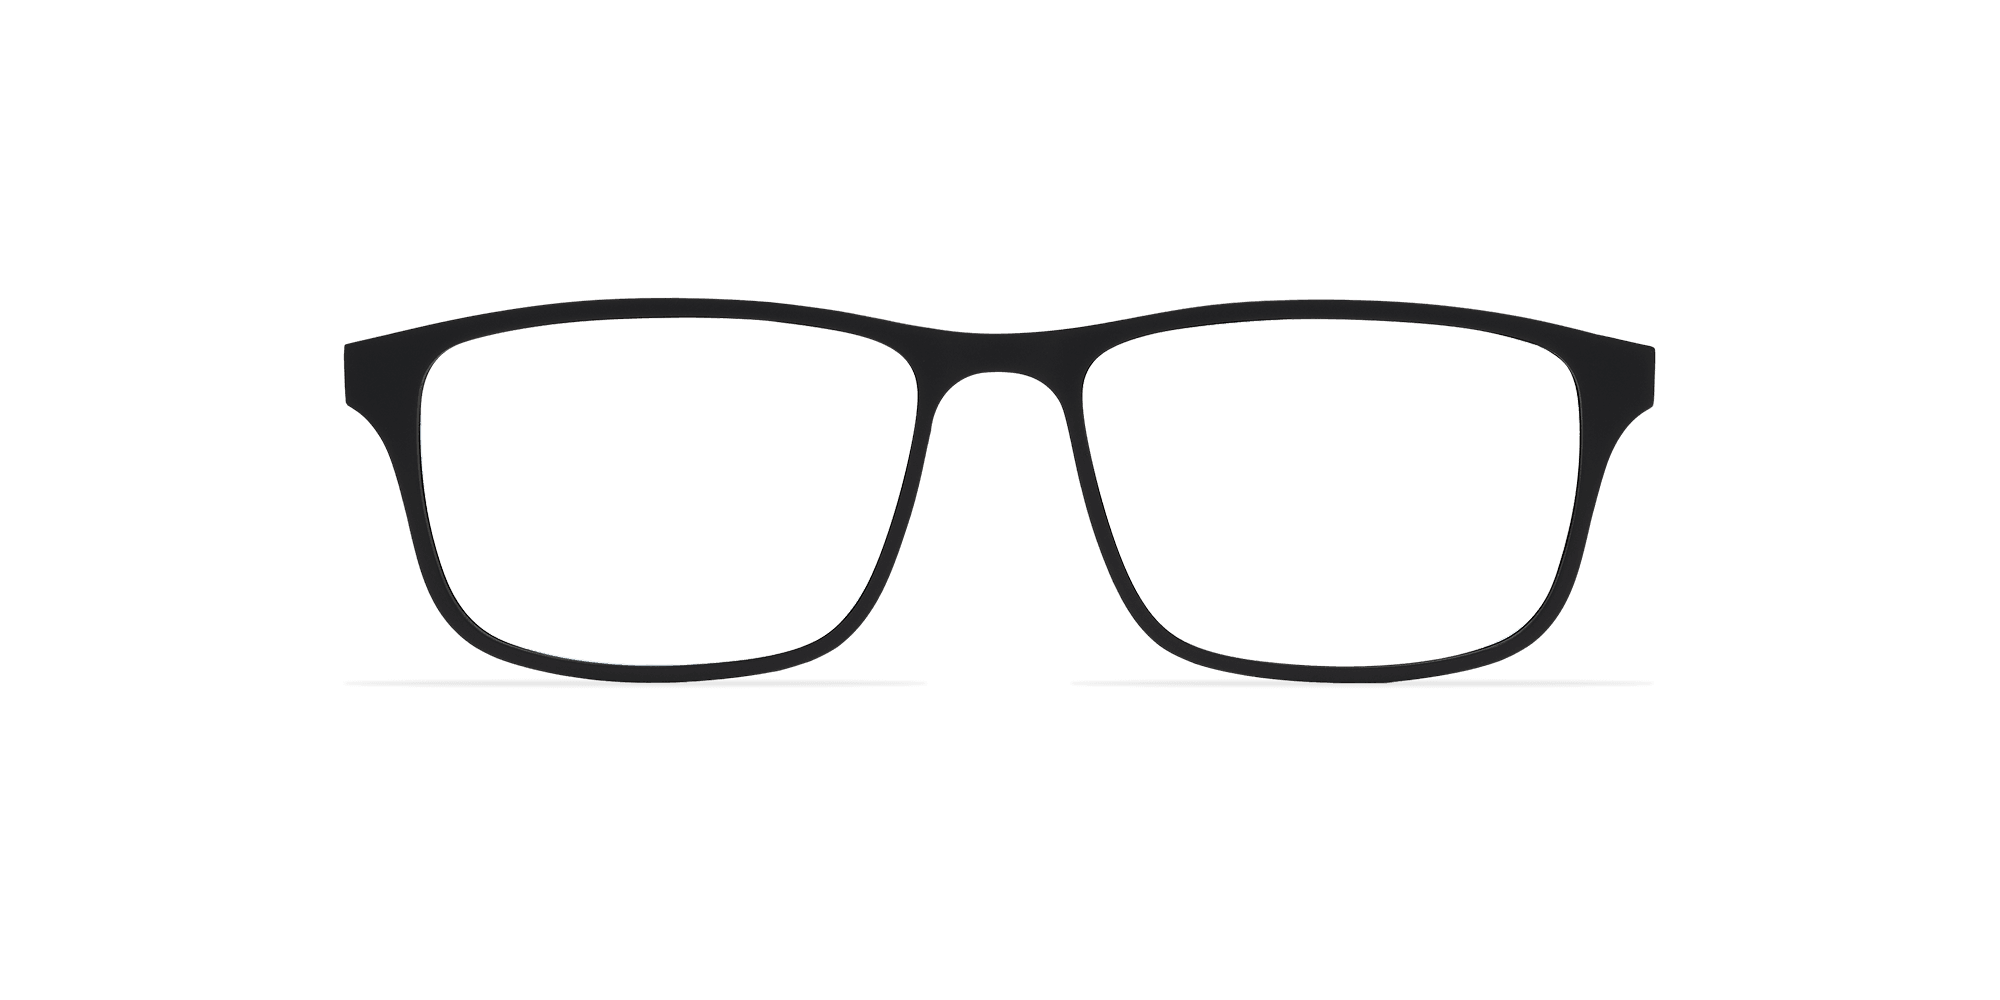 afflelou/france/products/smart_clip/clips_glasses/TMK41BBBK015416.png